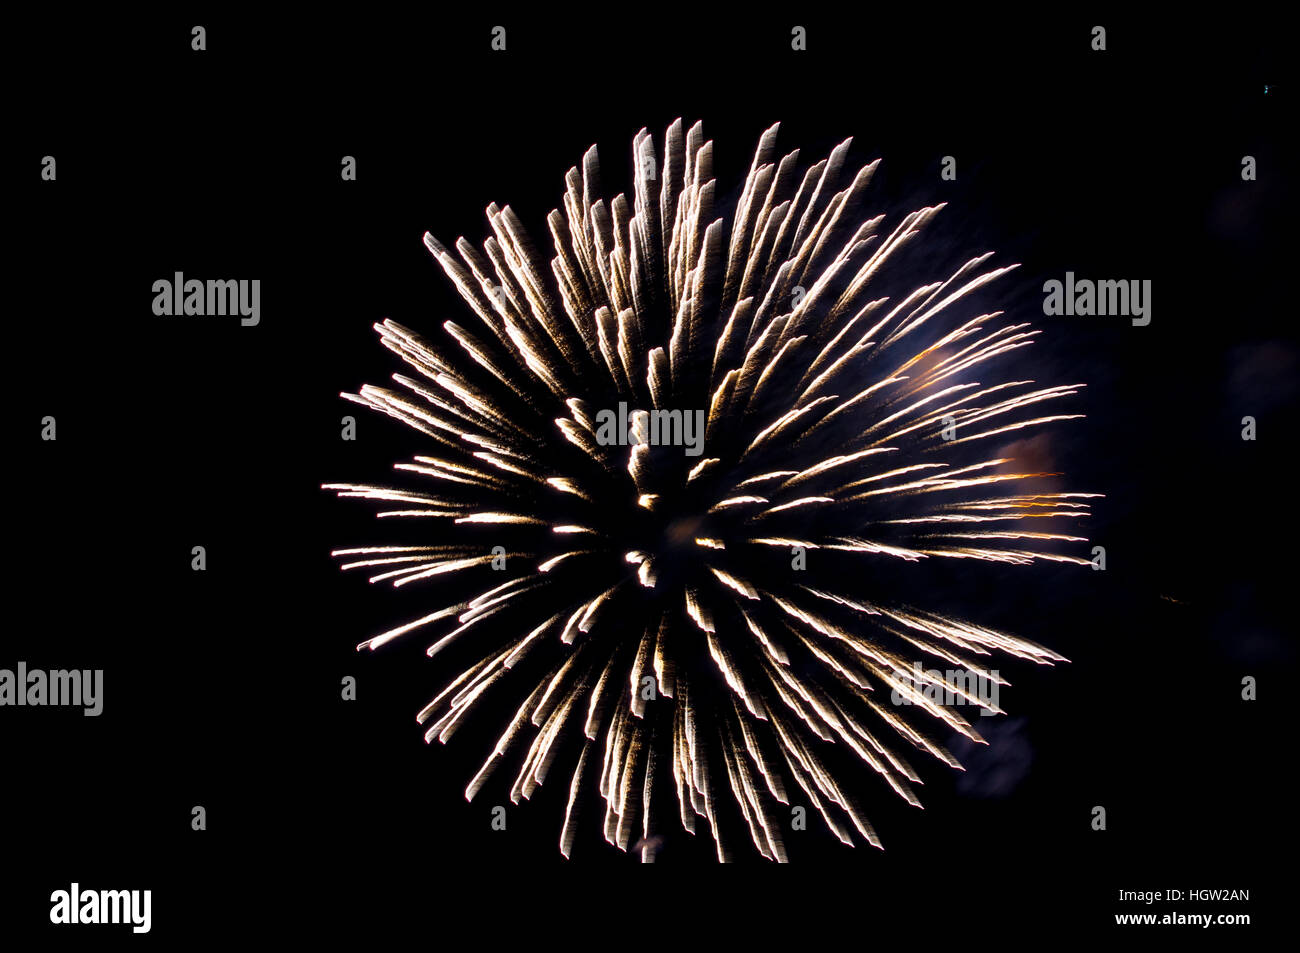 Minnesota, Mendota Heights, Sky Bursts Fireworks - Stock Image